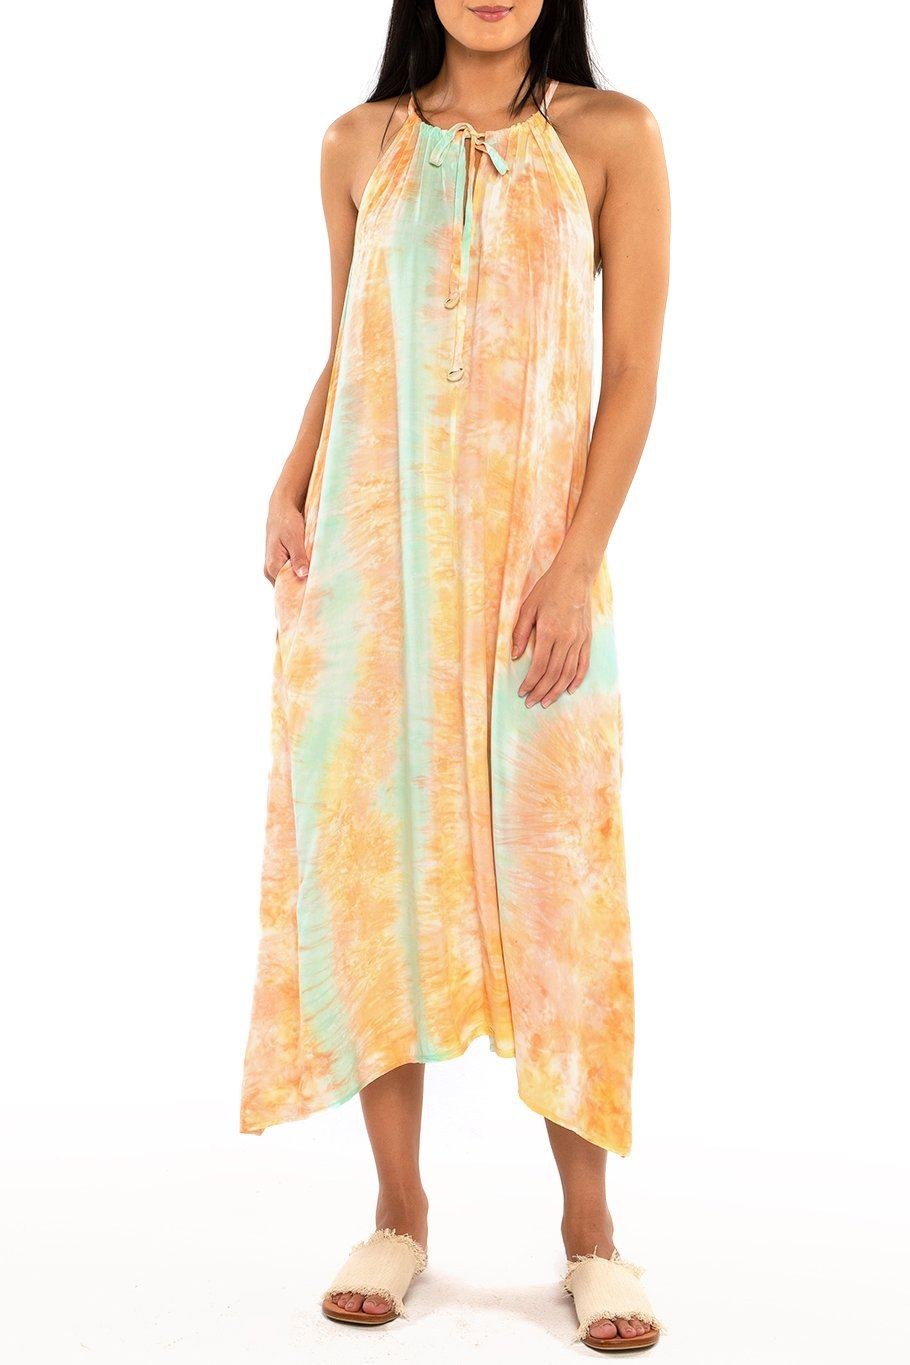 Tahiti Tie Dress - Sunset Dye